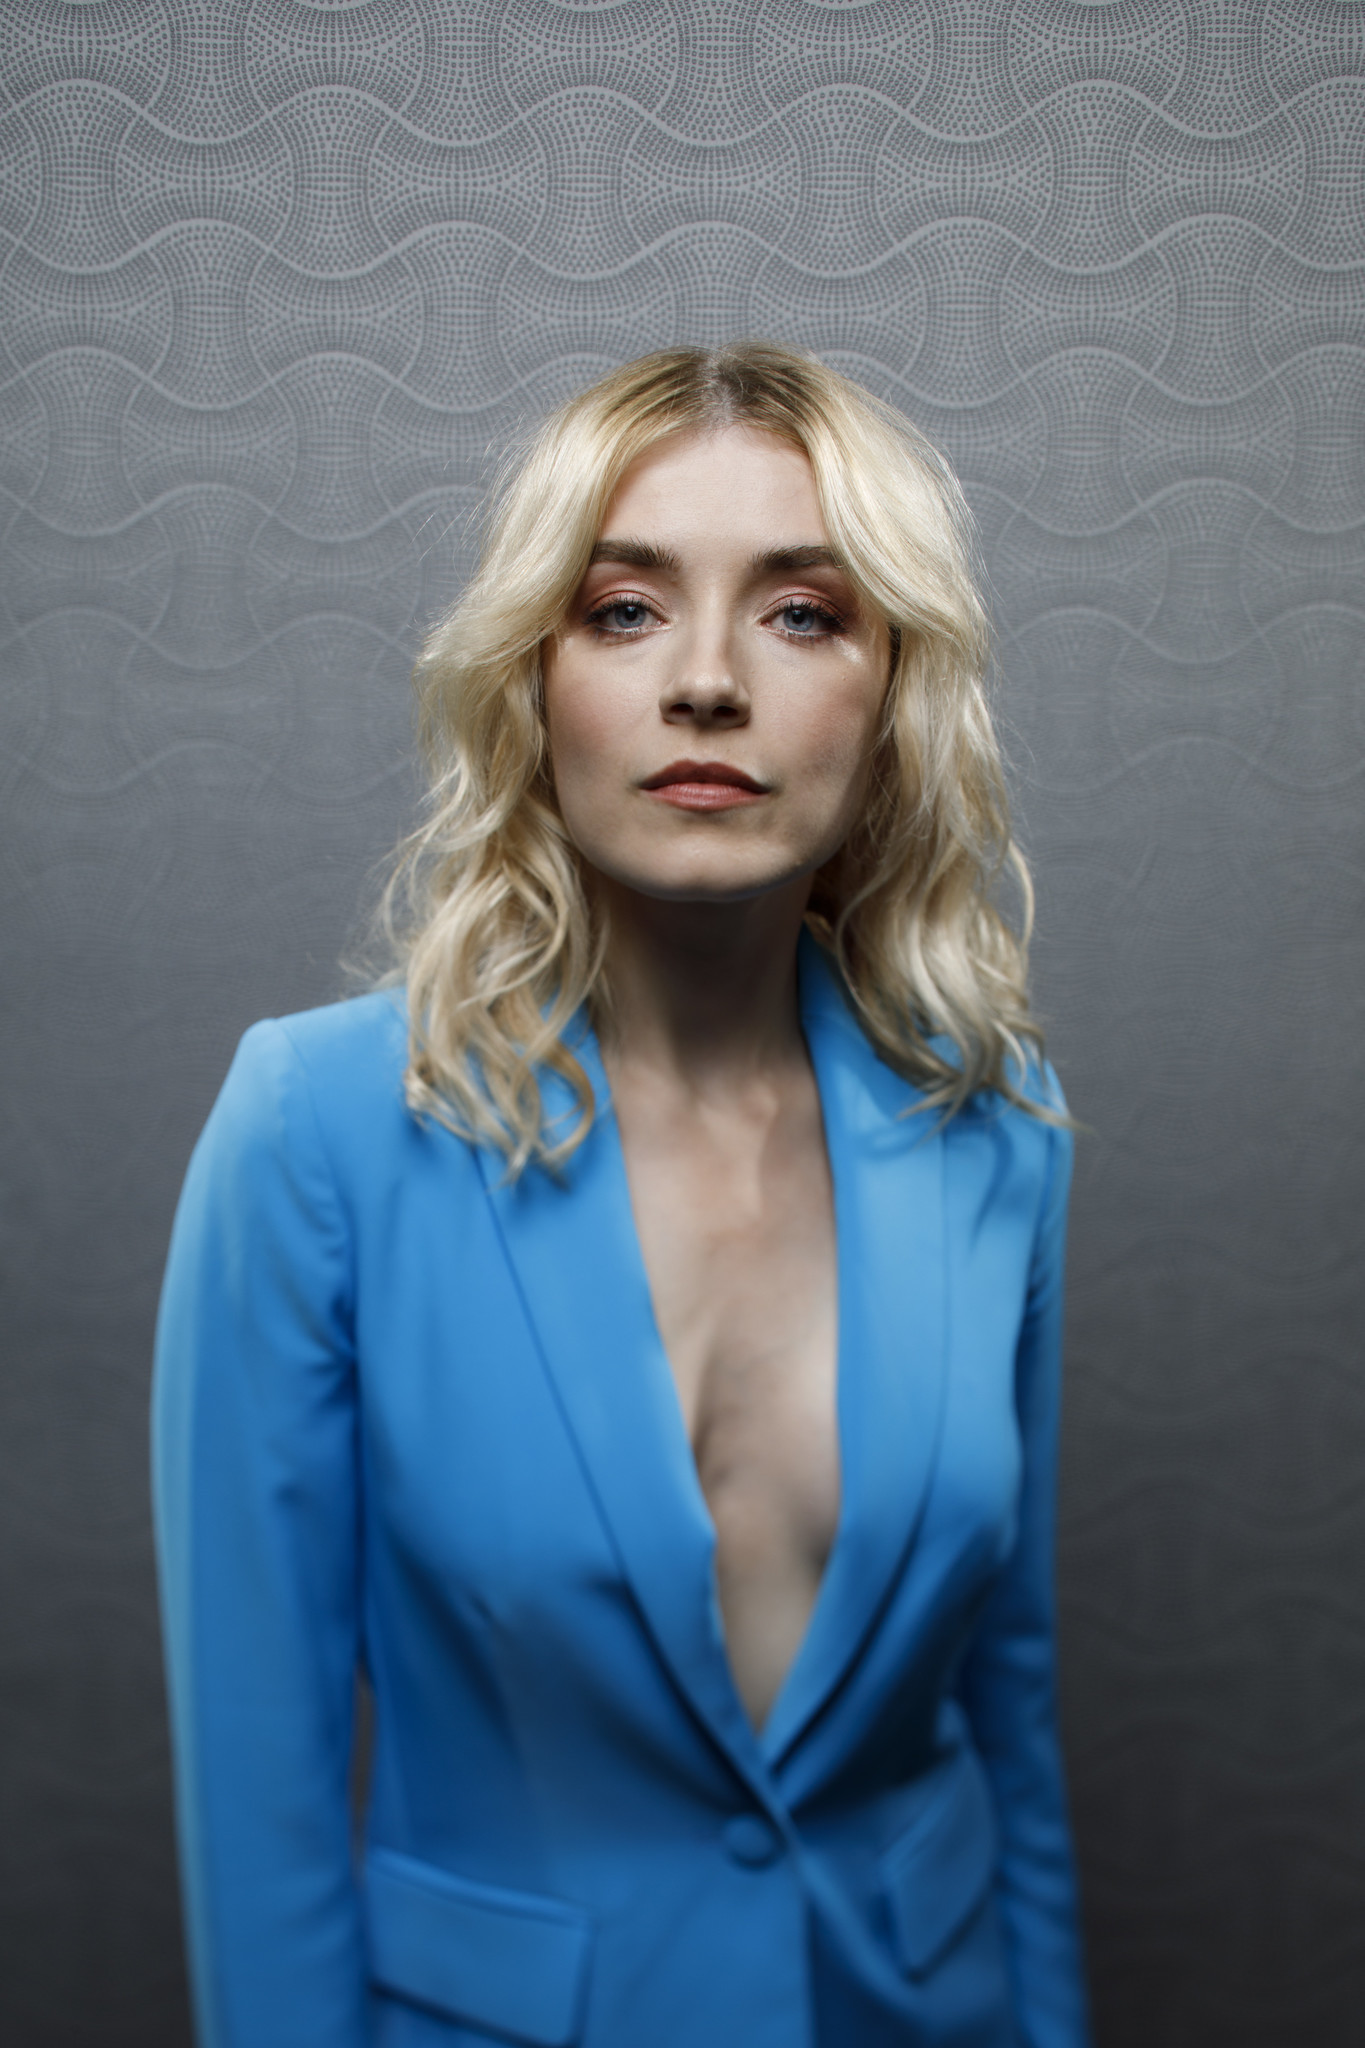 """SAN DIEGO, CALIF. -- JULY 21, 2018-- Sarah Bolgers from the television series """"Mayans M.C.,"""" photog"""